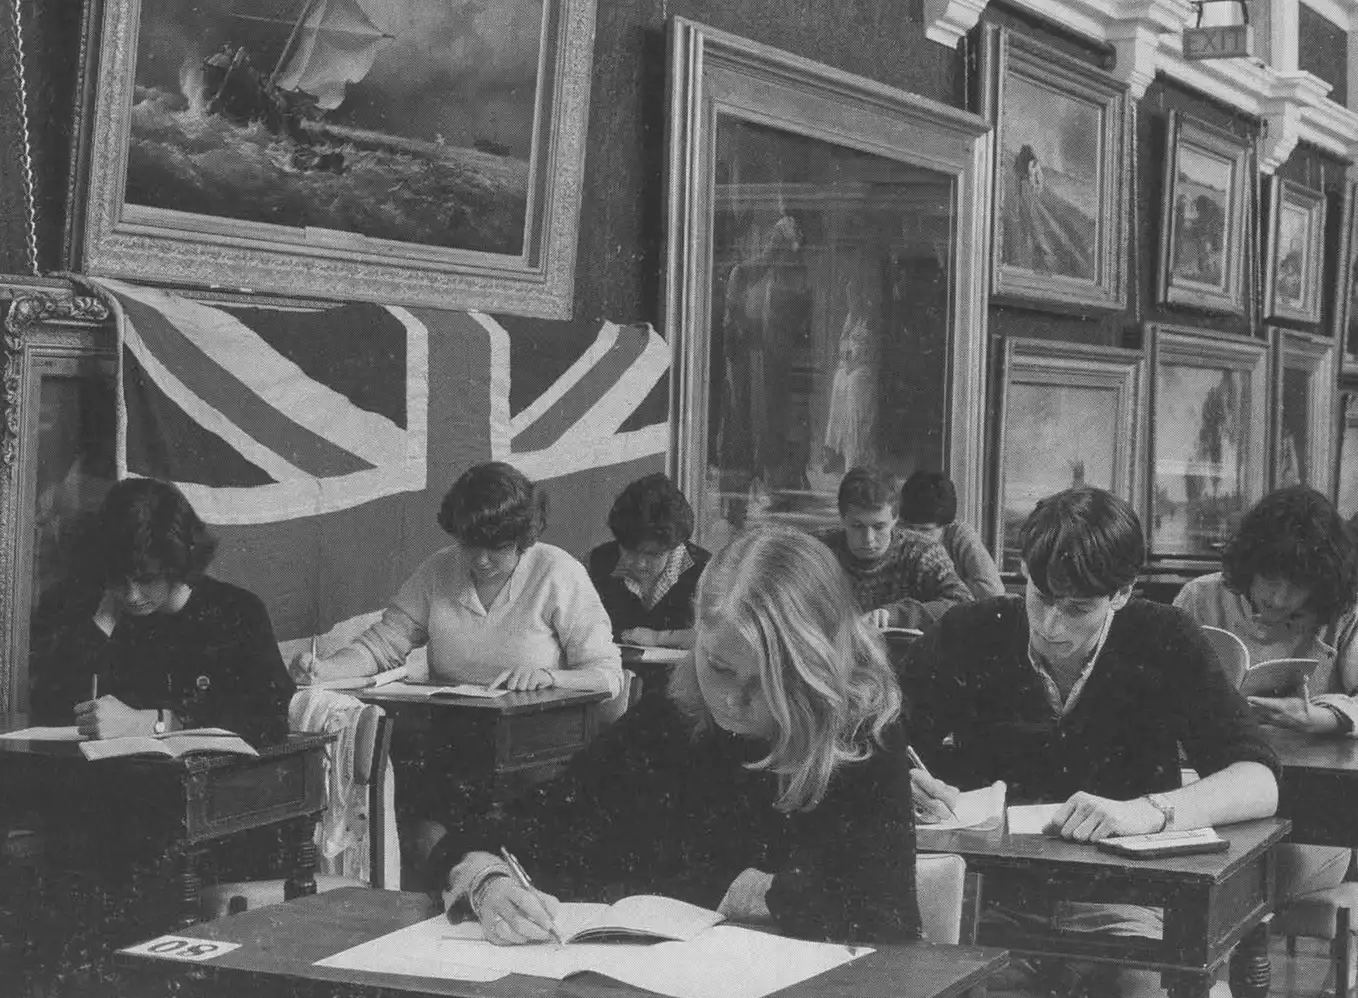 The cursed painting covered by the Union Jack flag.